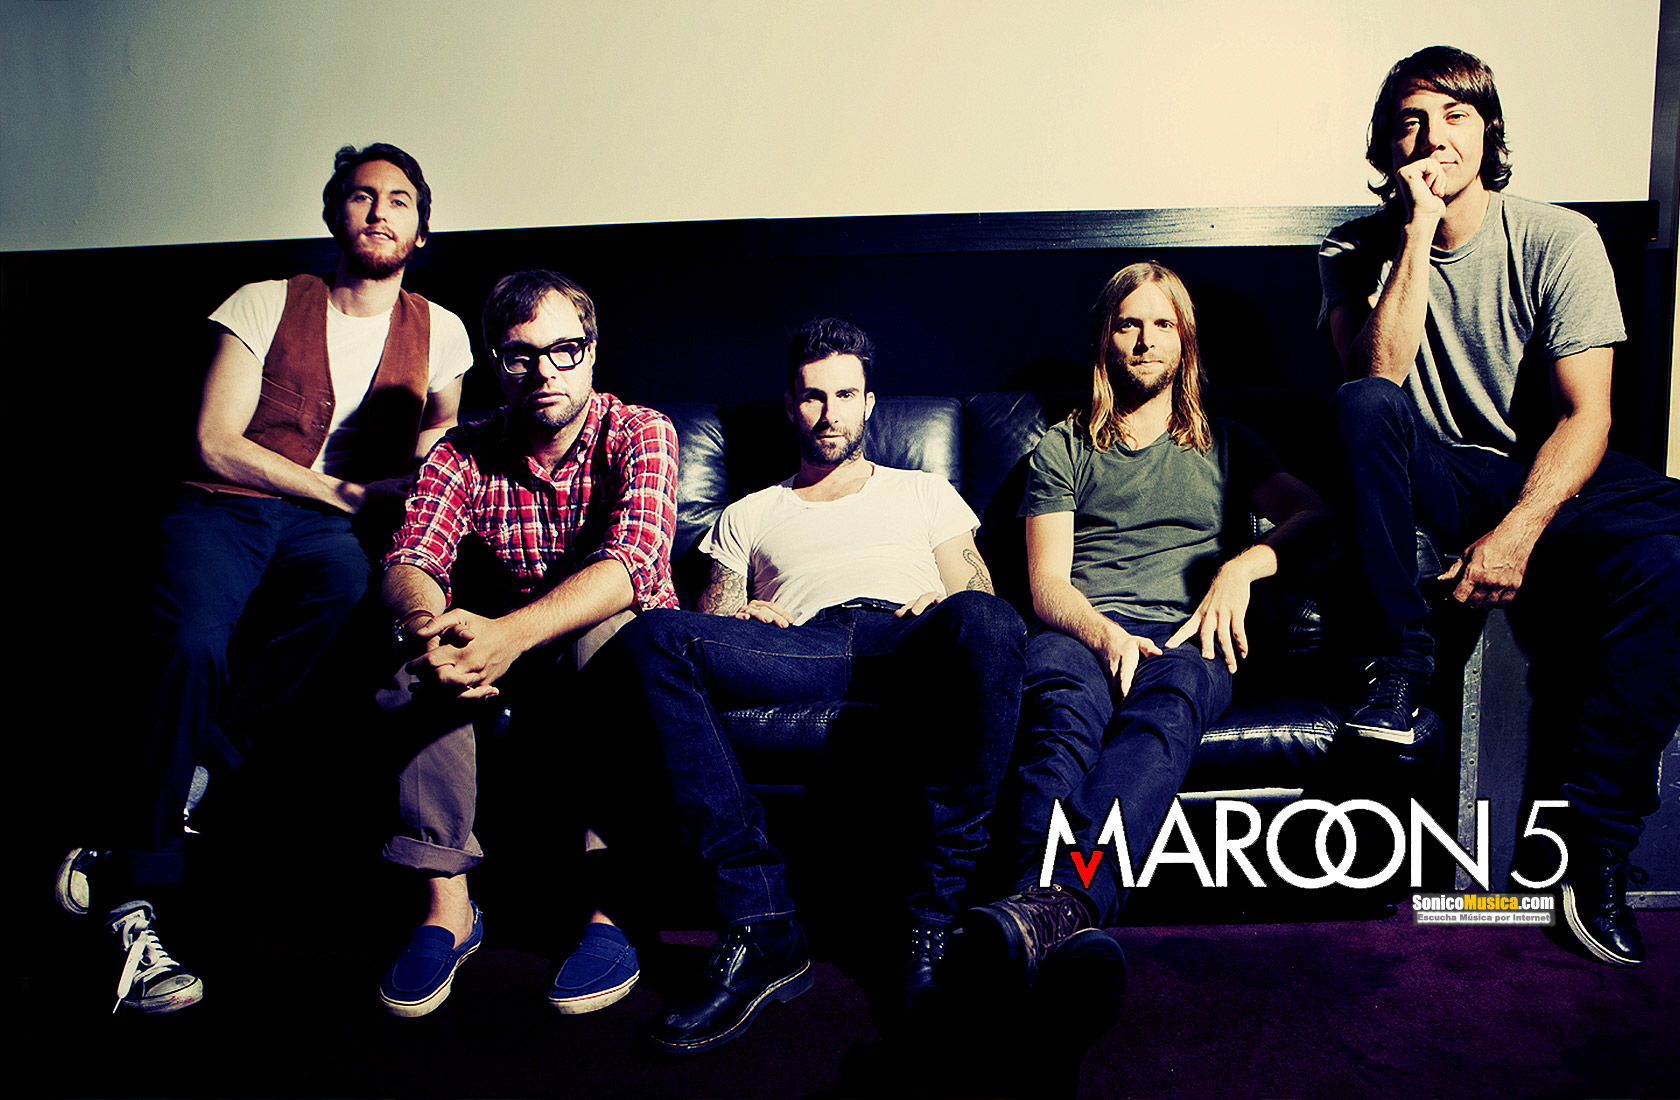 Maroon 5 Wallpapers High Quality | Download Free